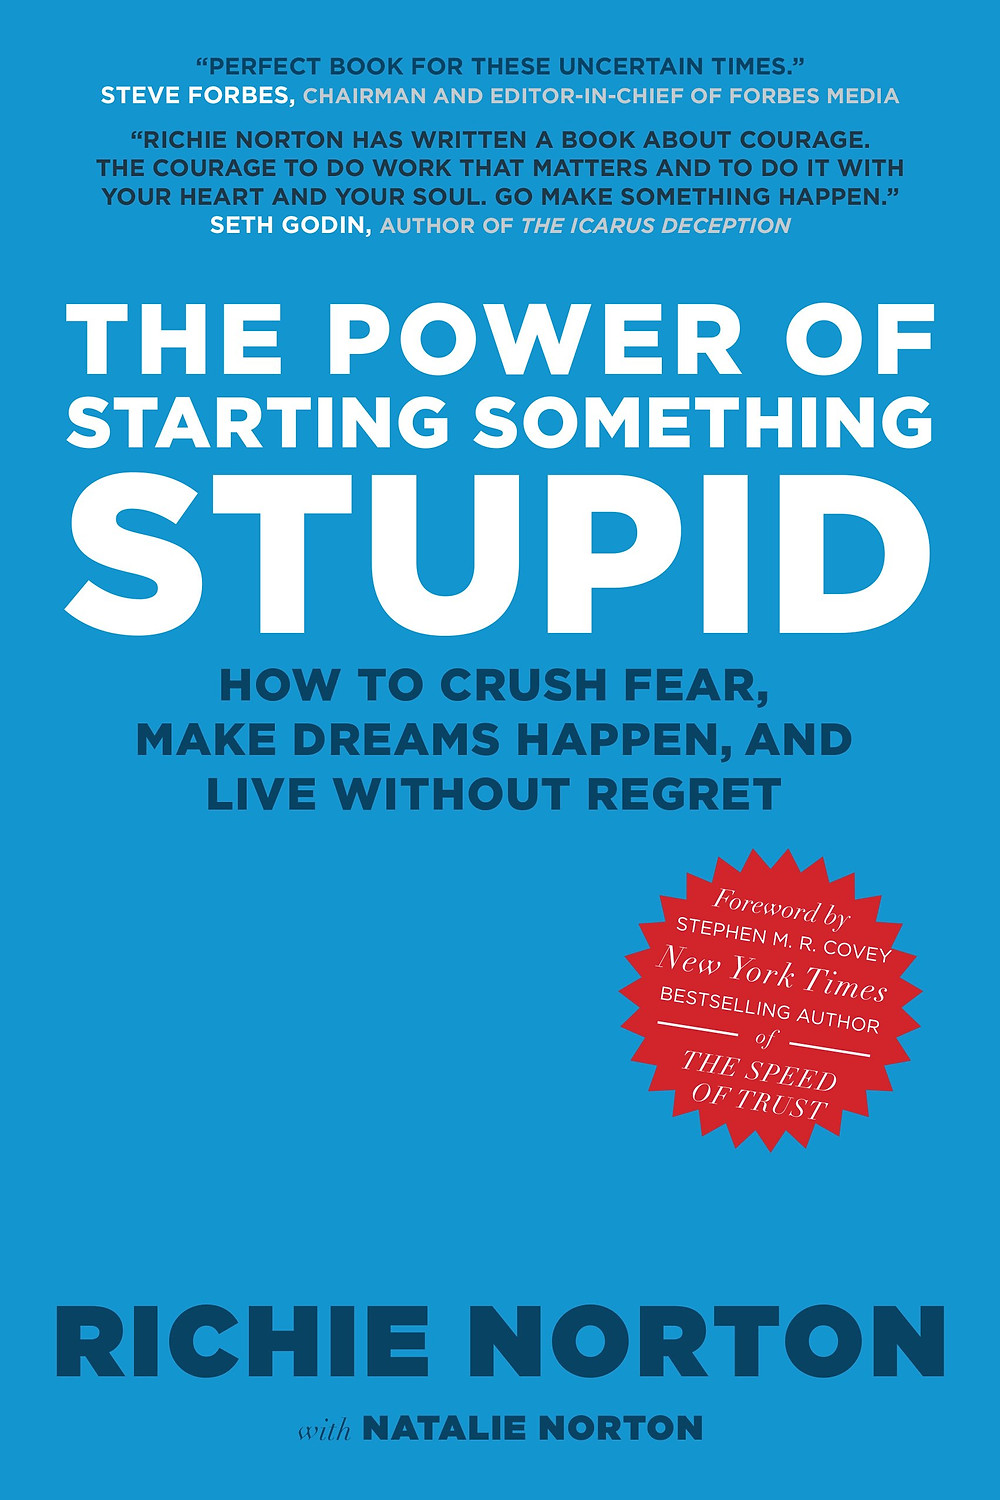 Richie Norton. The Power of Starting Something Stupid. Amazon. Inspiration for Projects. Destiny Yarbro.